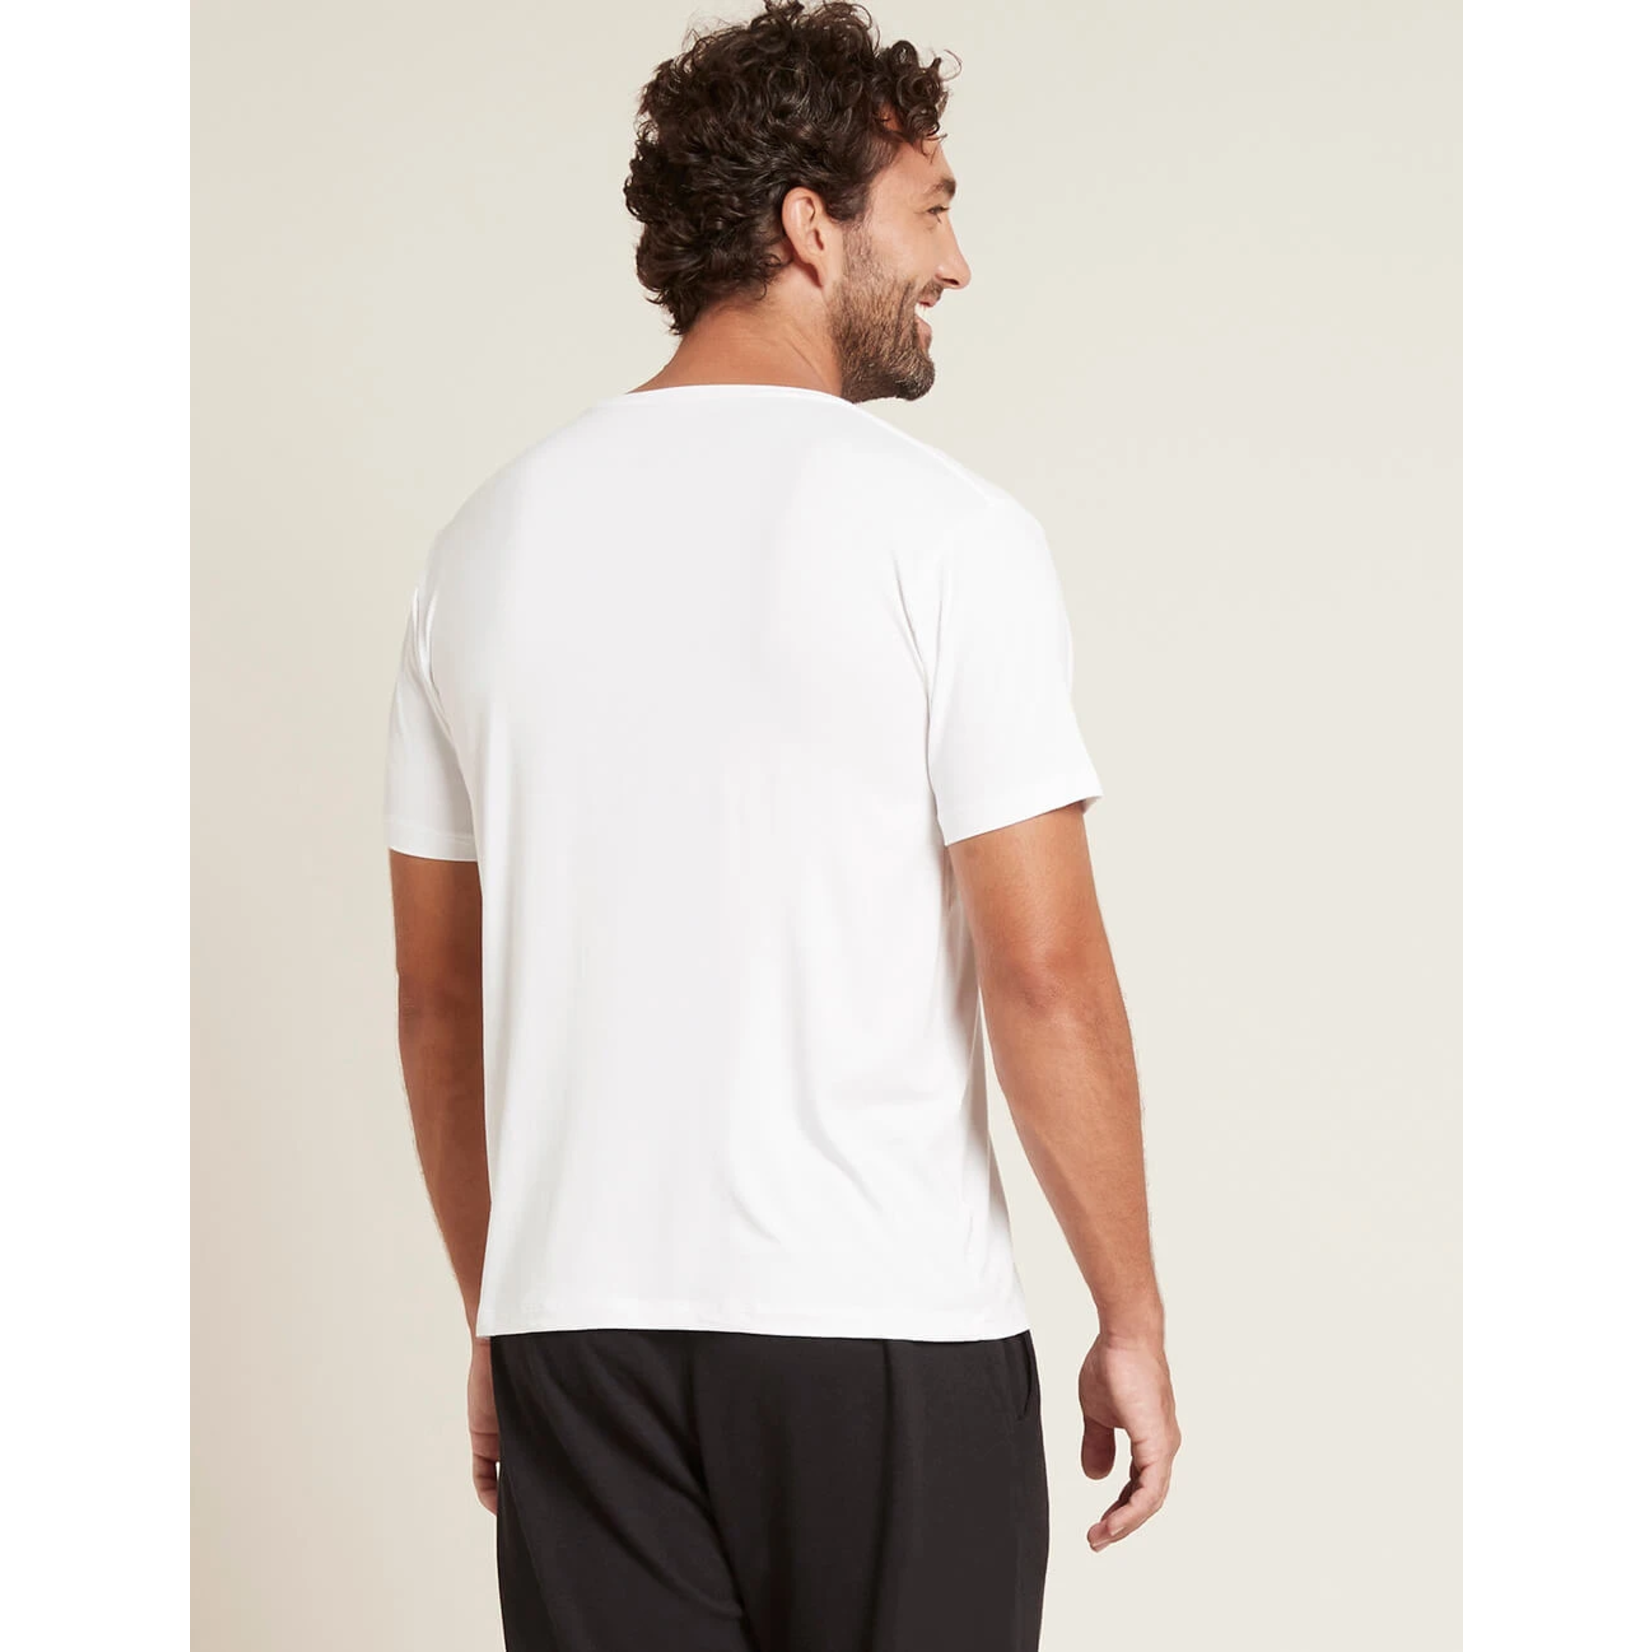 Boody Boody Men's V-Neck T-Shirt